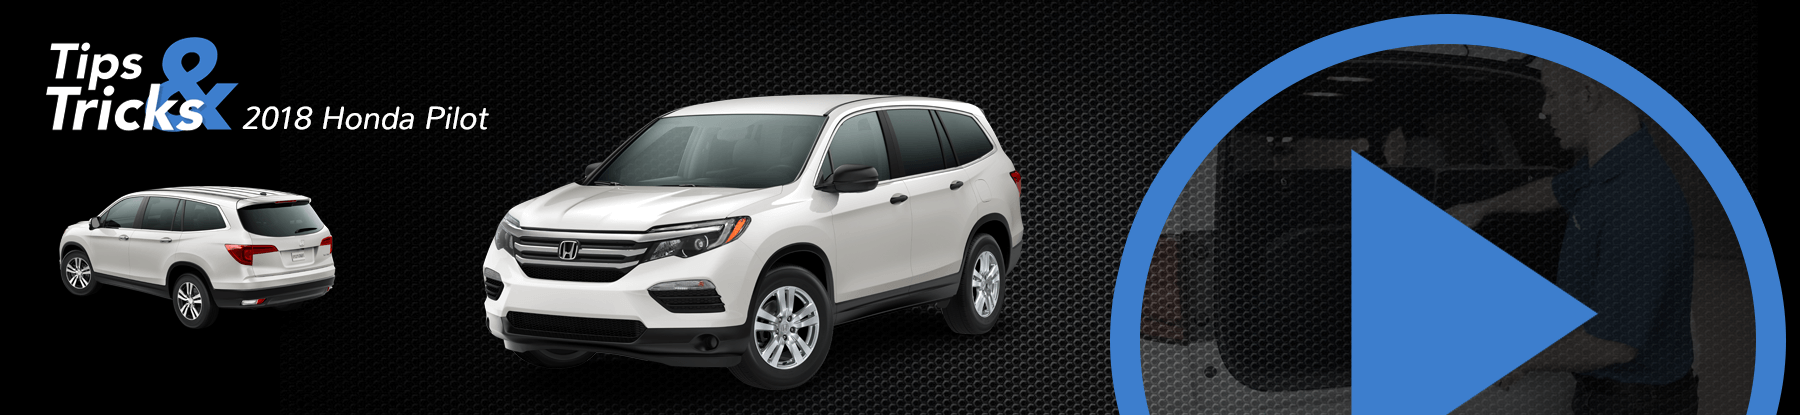 2018 Honda Pilot Tips and Tricks